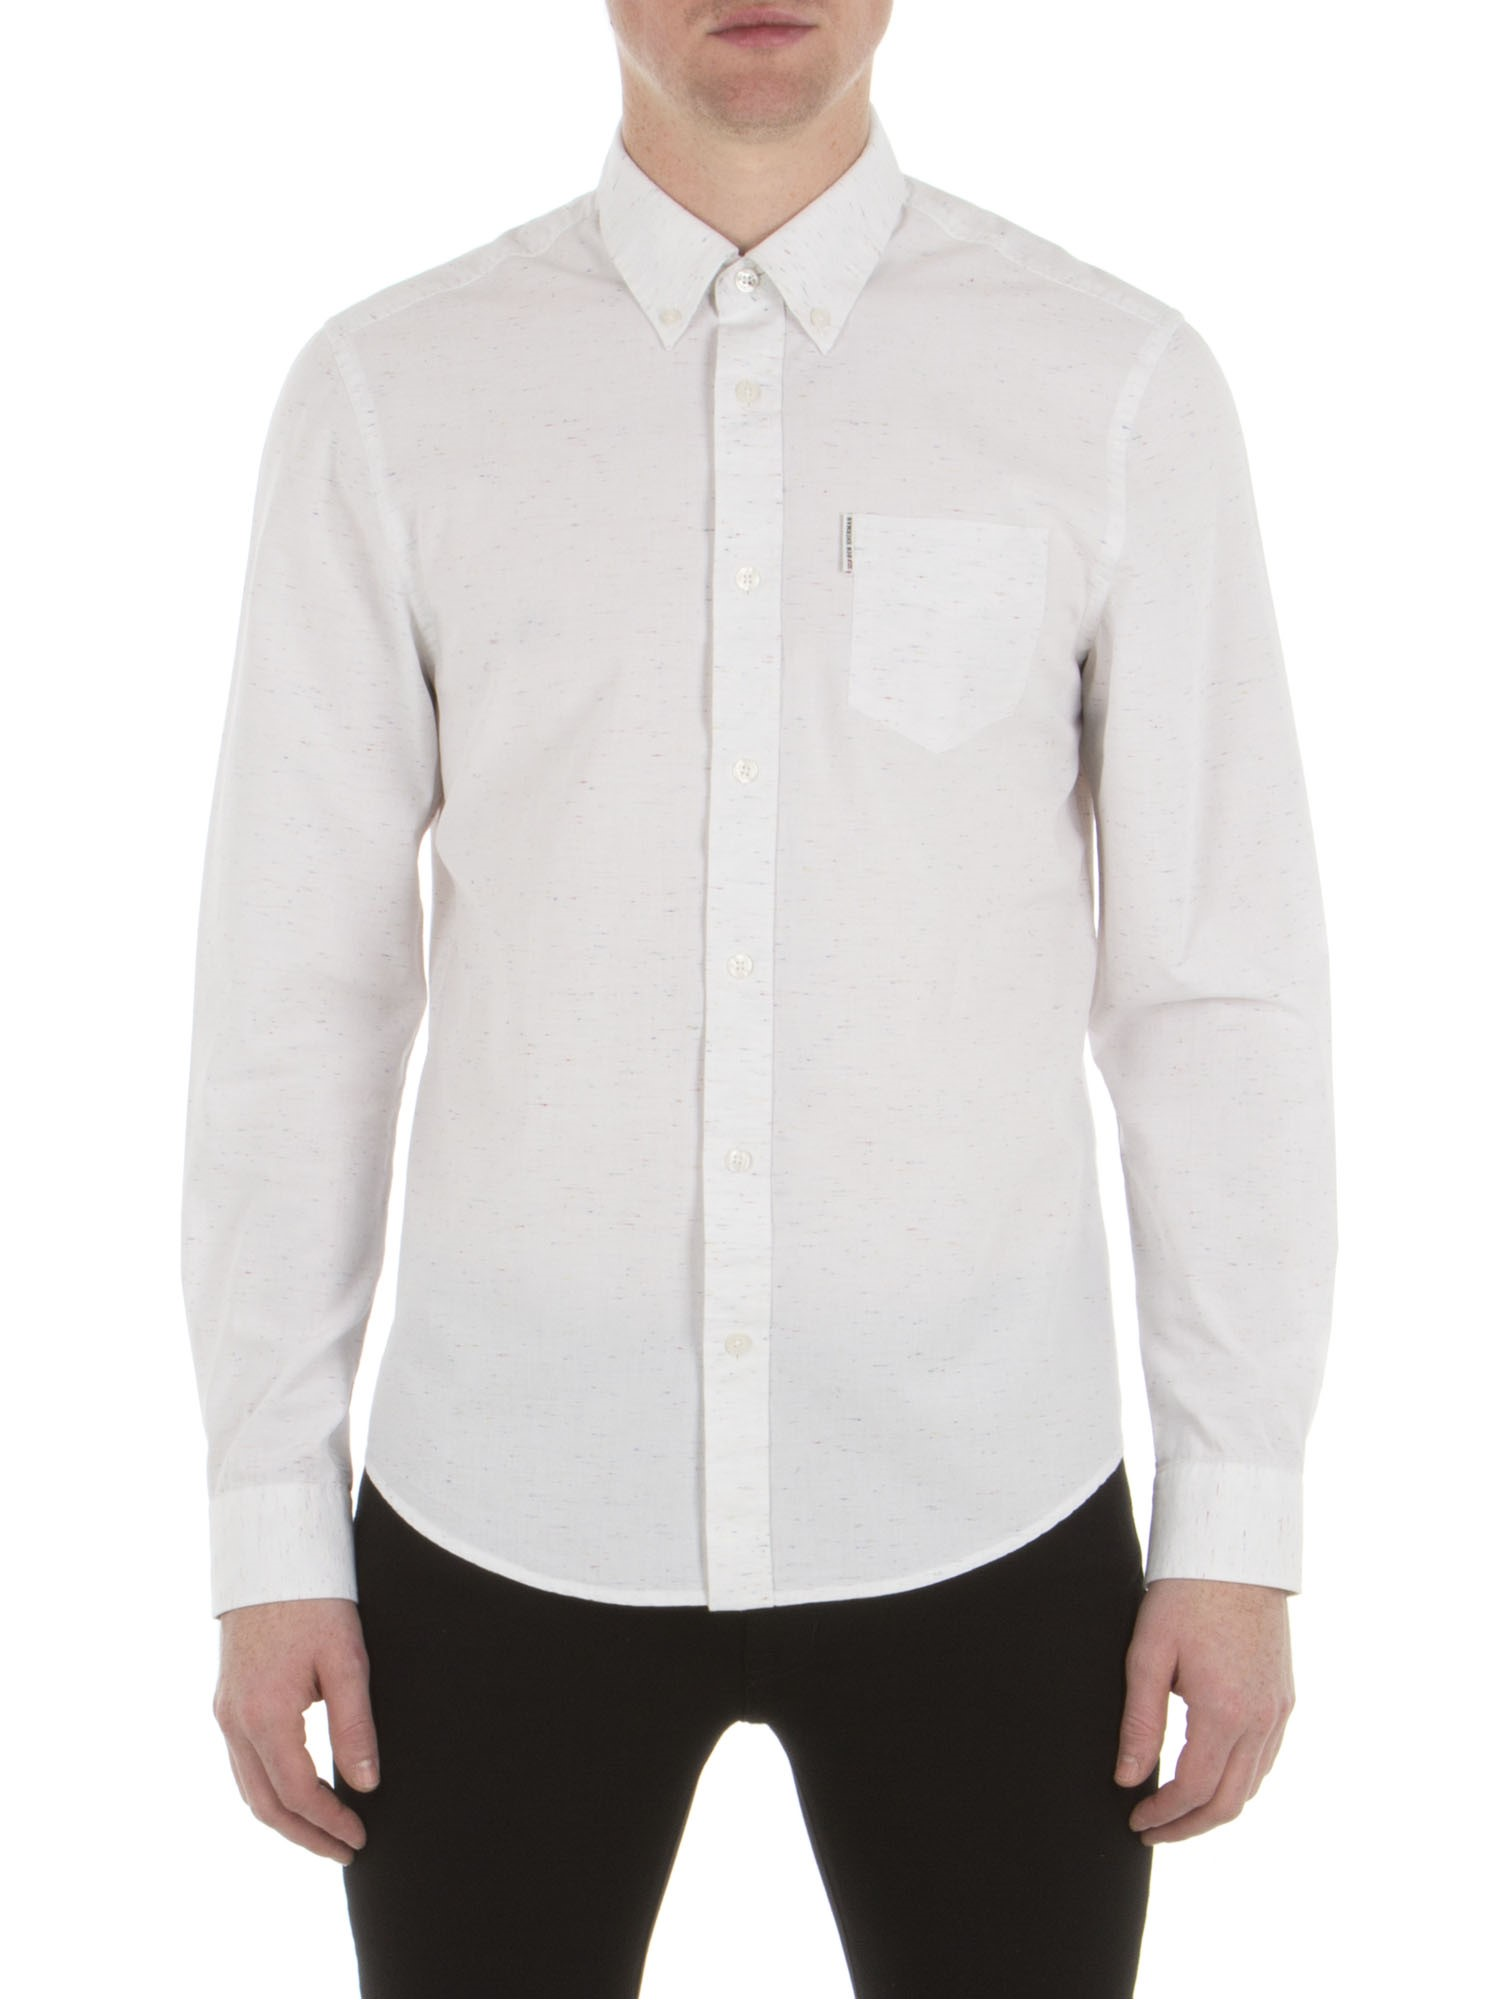 Ben Sherman Bright White Long Sleeve Heavy Nep Shirt Regular Fit (Mod Fit)